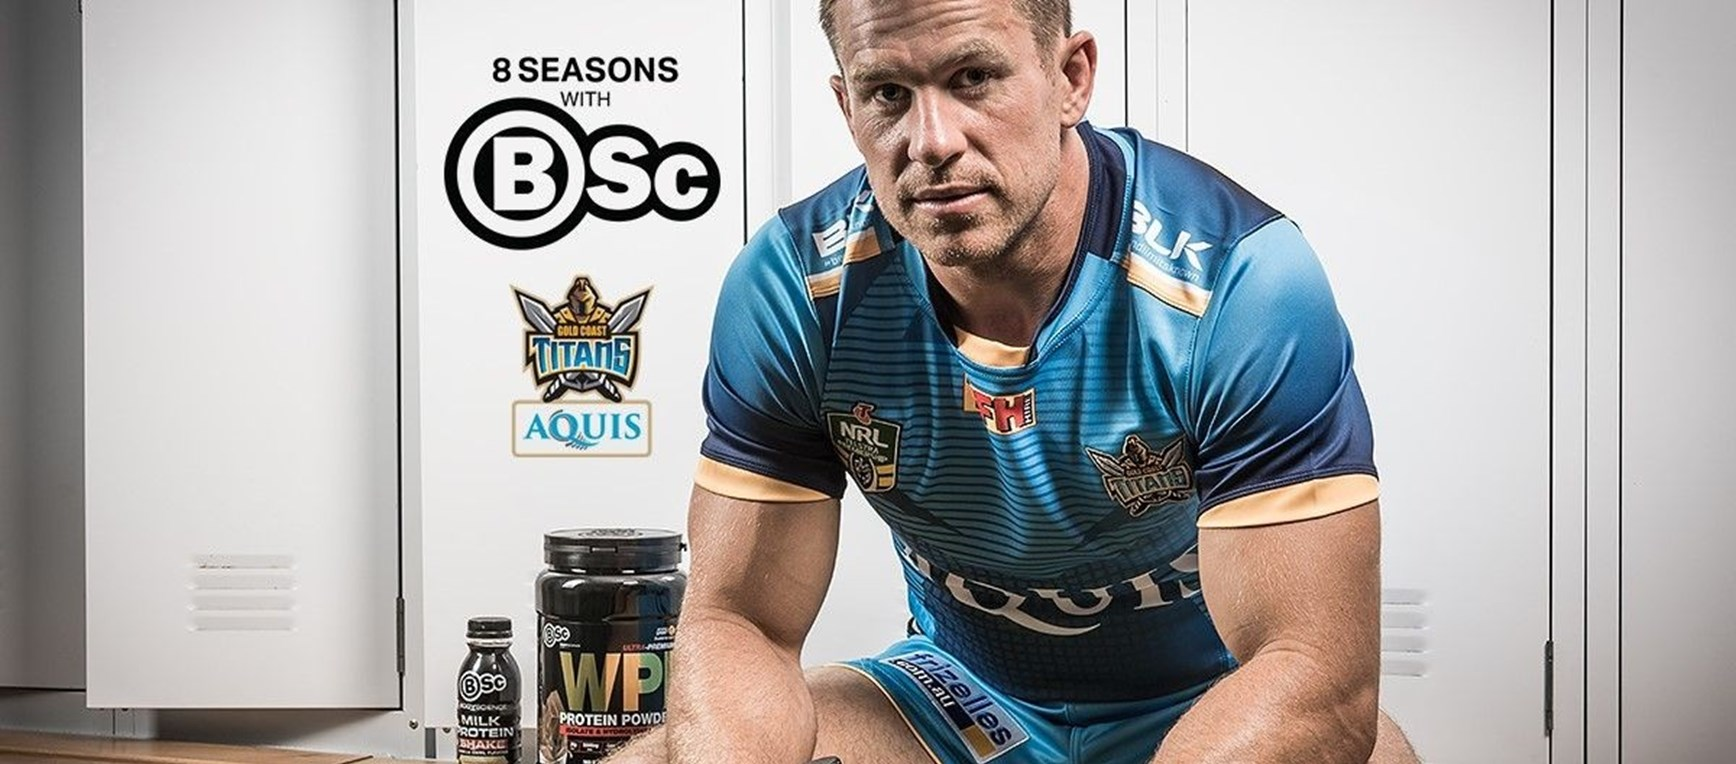 Titans sponsor Body Science re-signs partnership for 8th season